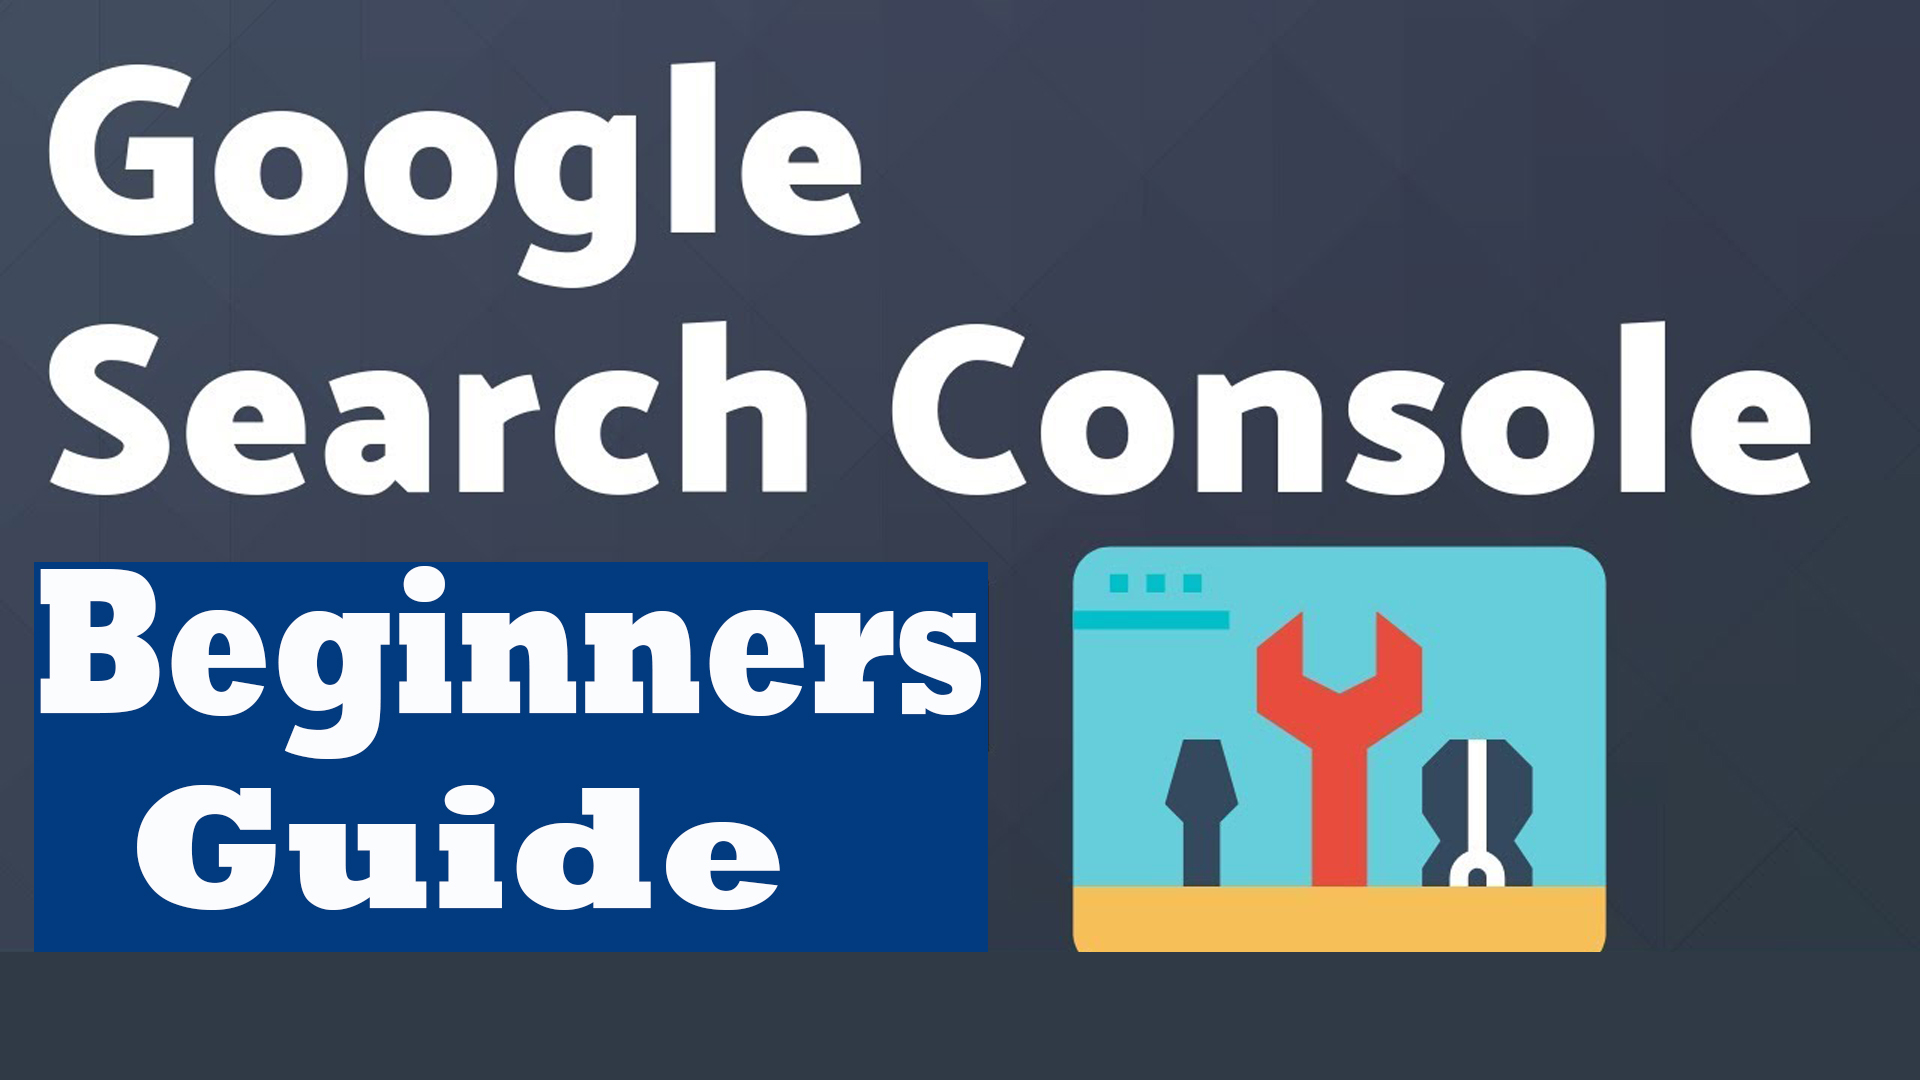 Google Search Console Beginners Guide - Complete Overview